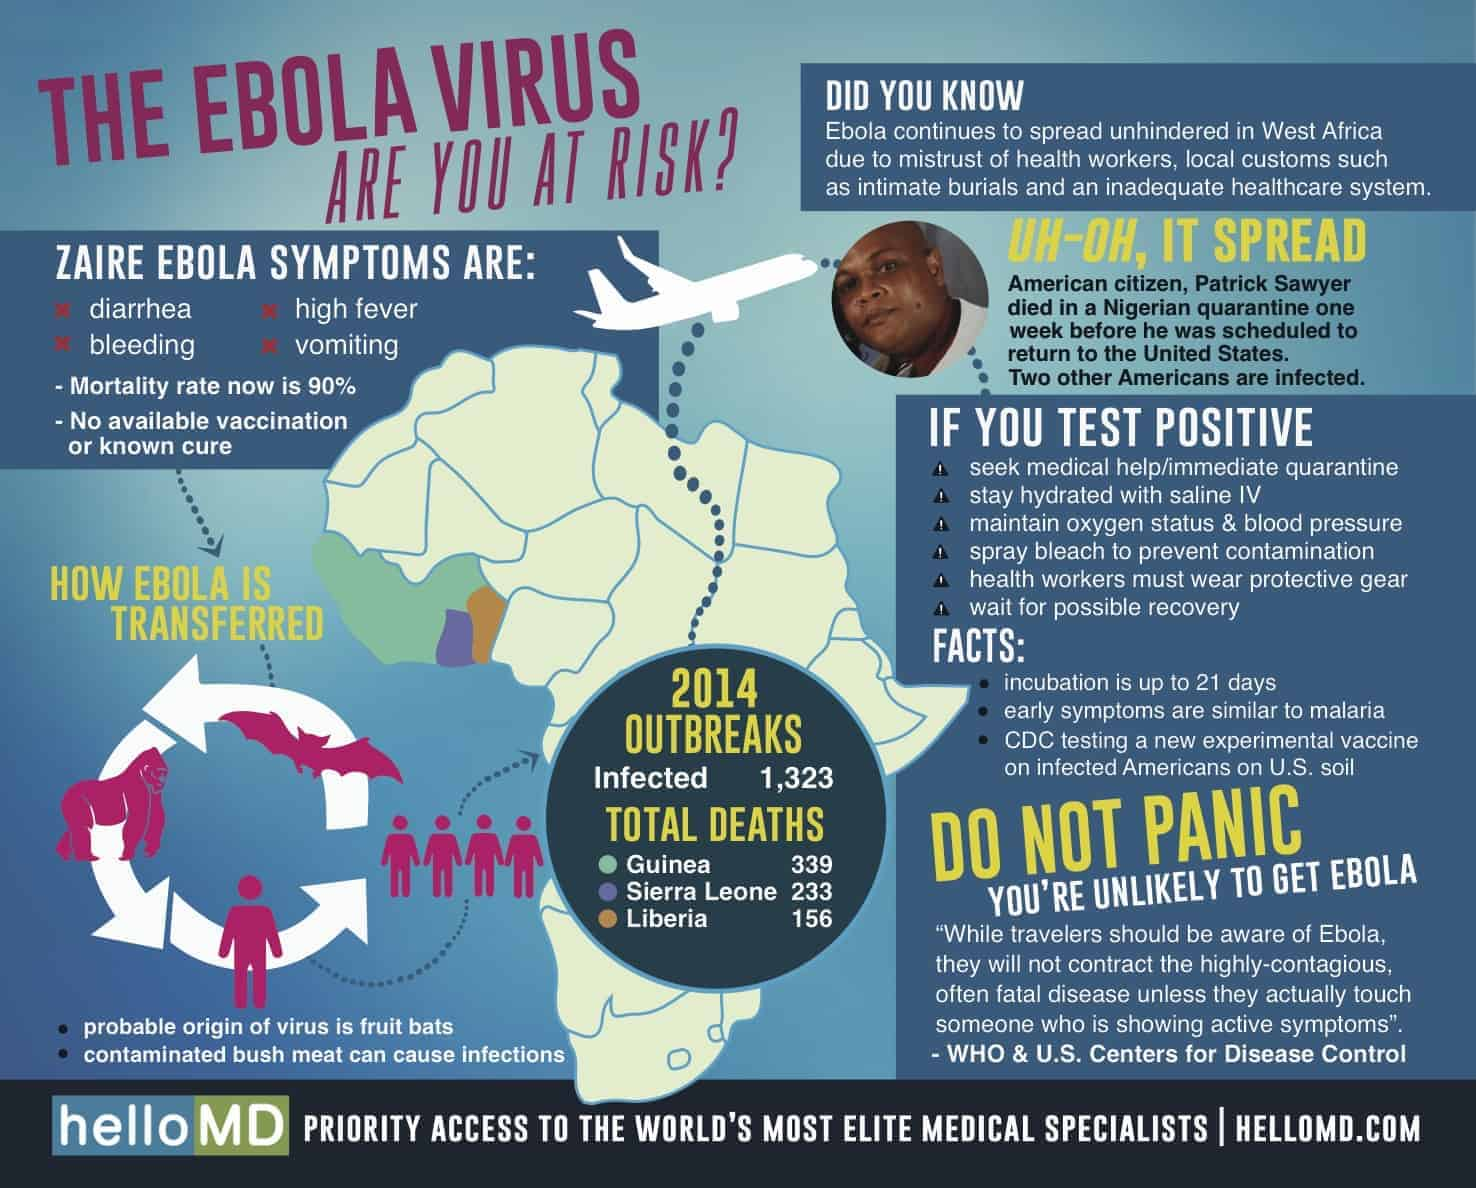 Ebola Virus - Are You at Risk?